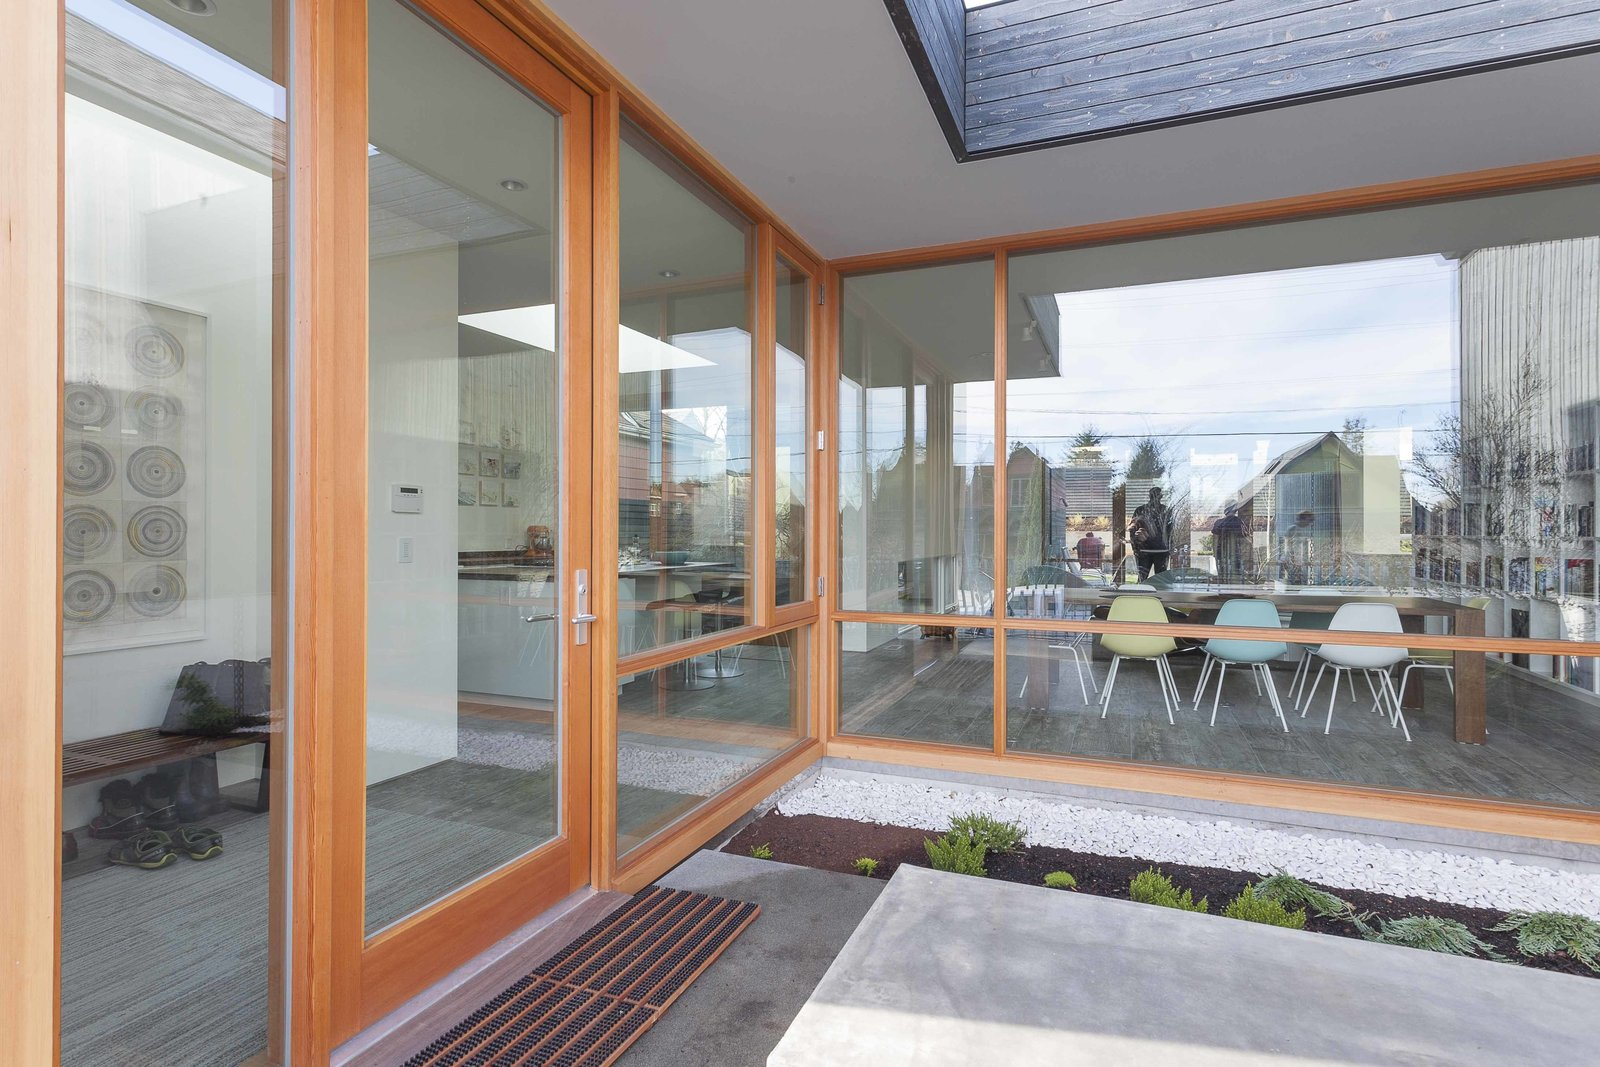 """The front exterior entryway features expansive windows and door by Quantum, which lead into the dining and living area of the main floor. """"[Pulling] as much natural light into the interior as possible"""" was one of the clients' biggest requests, says architect Mike Mora of Heliotrope.  Central District Residence by Sarah Akkoush"""